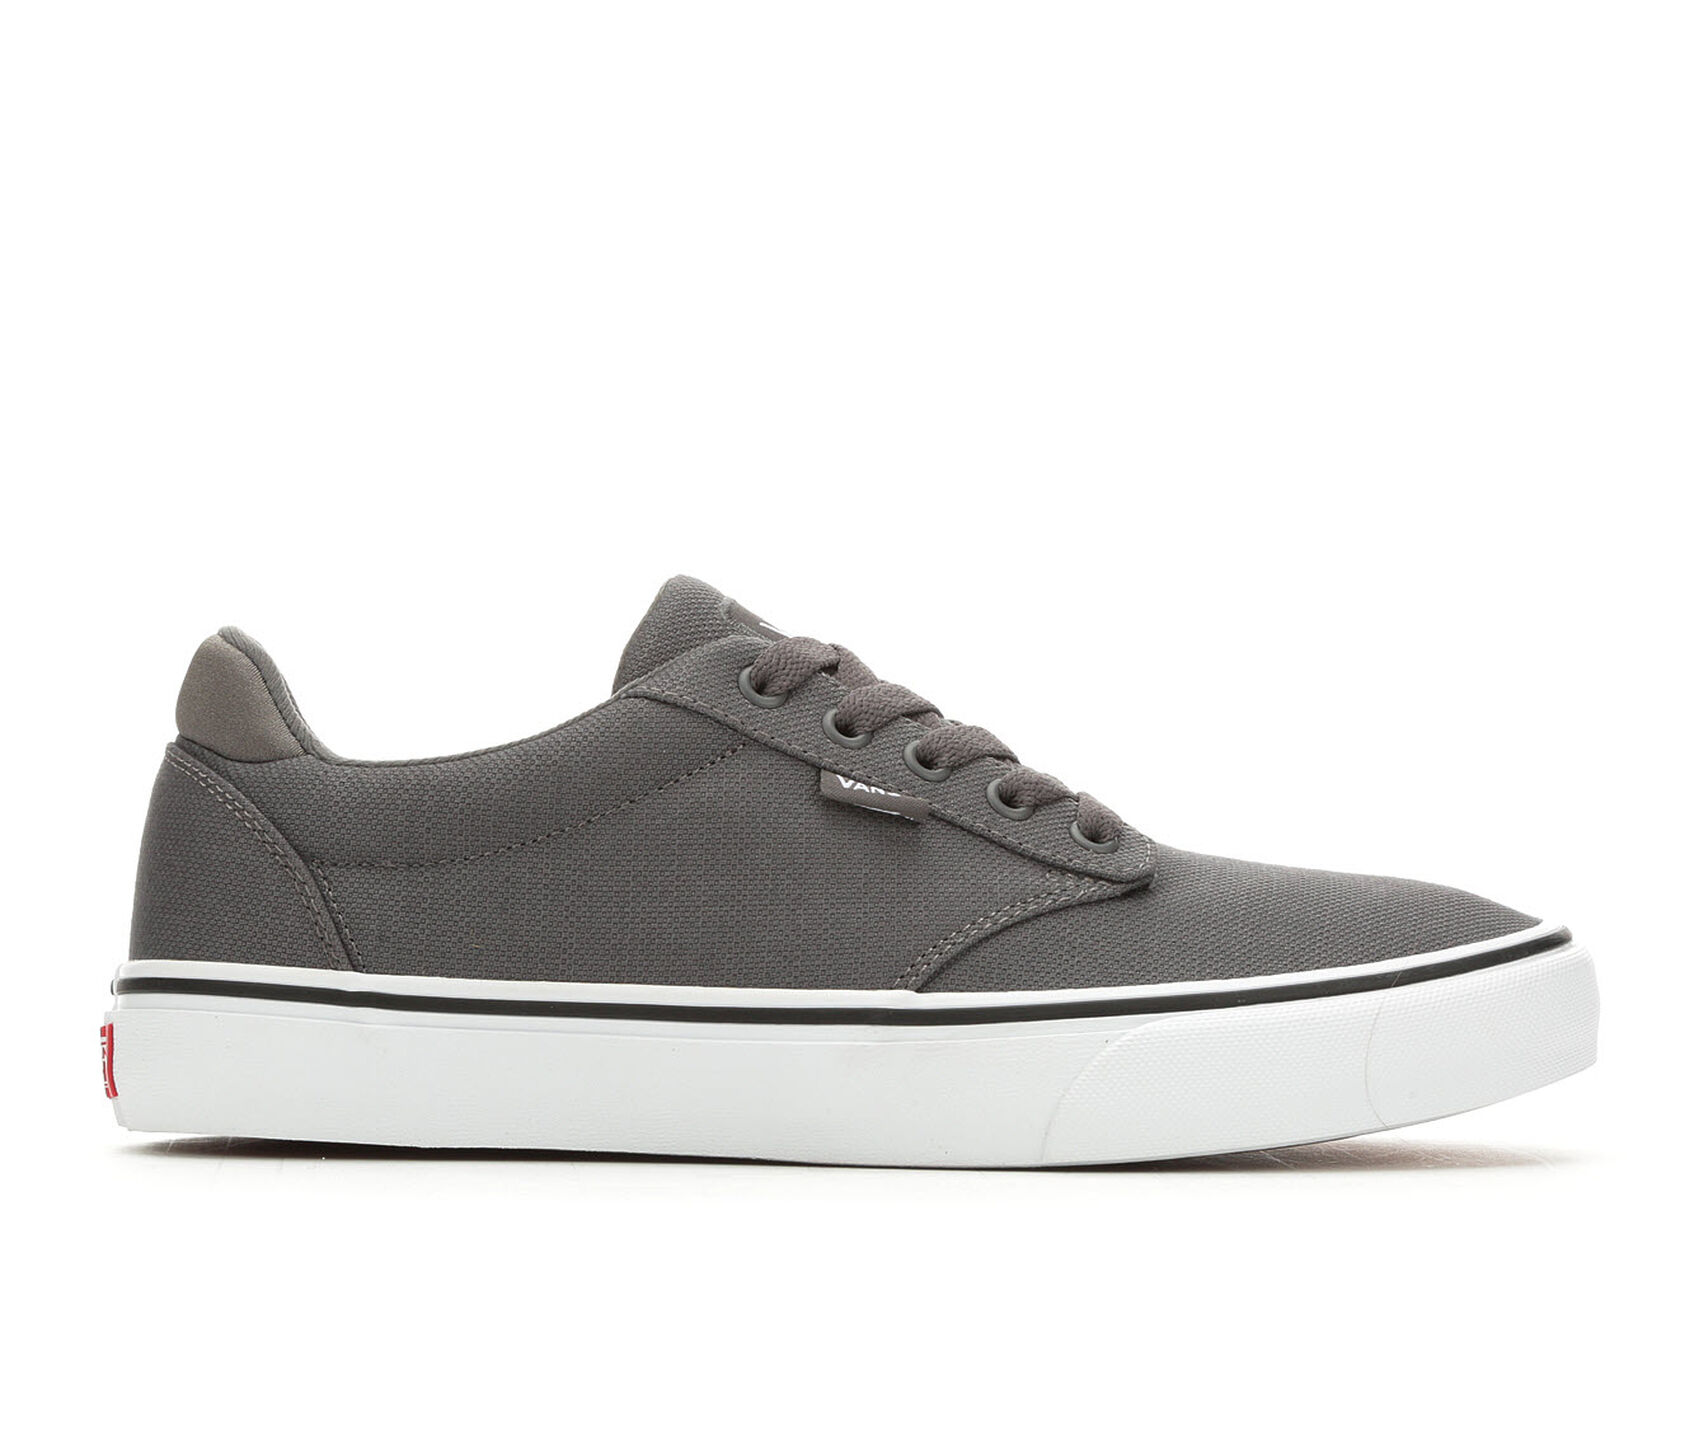 49a2f2681a9a8c Men s Vans Atwood Deluxe Skate Shoes